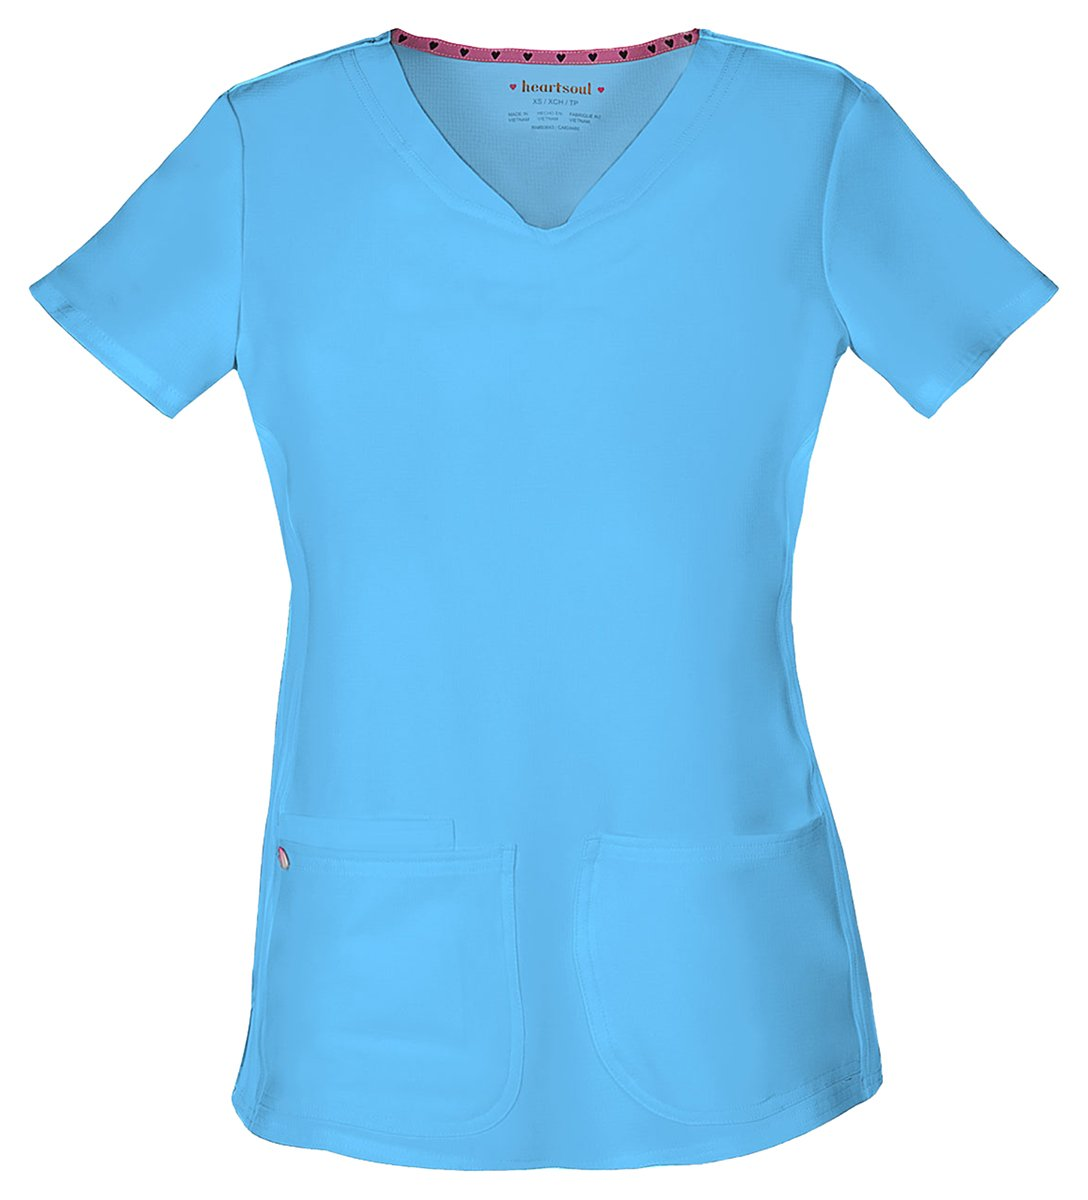 HeartSoul Women's Pitter-Pat Shaped V-Neck Top_Turquoise_X-Small,20710 by HeartSoul (Image #1)